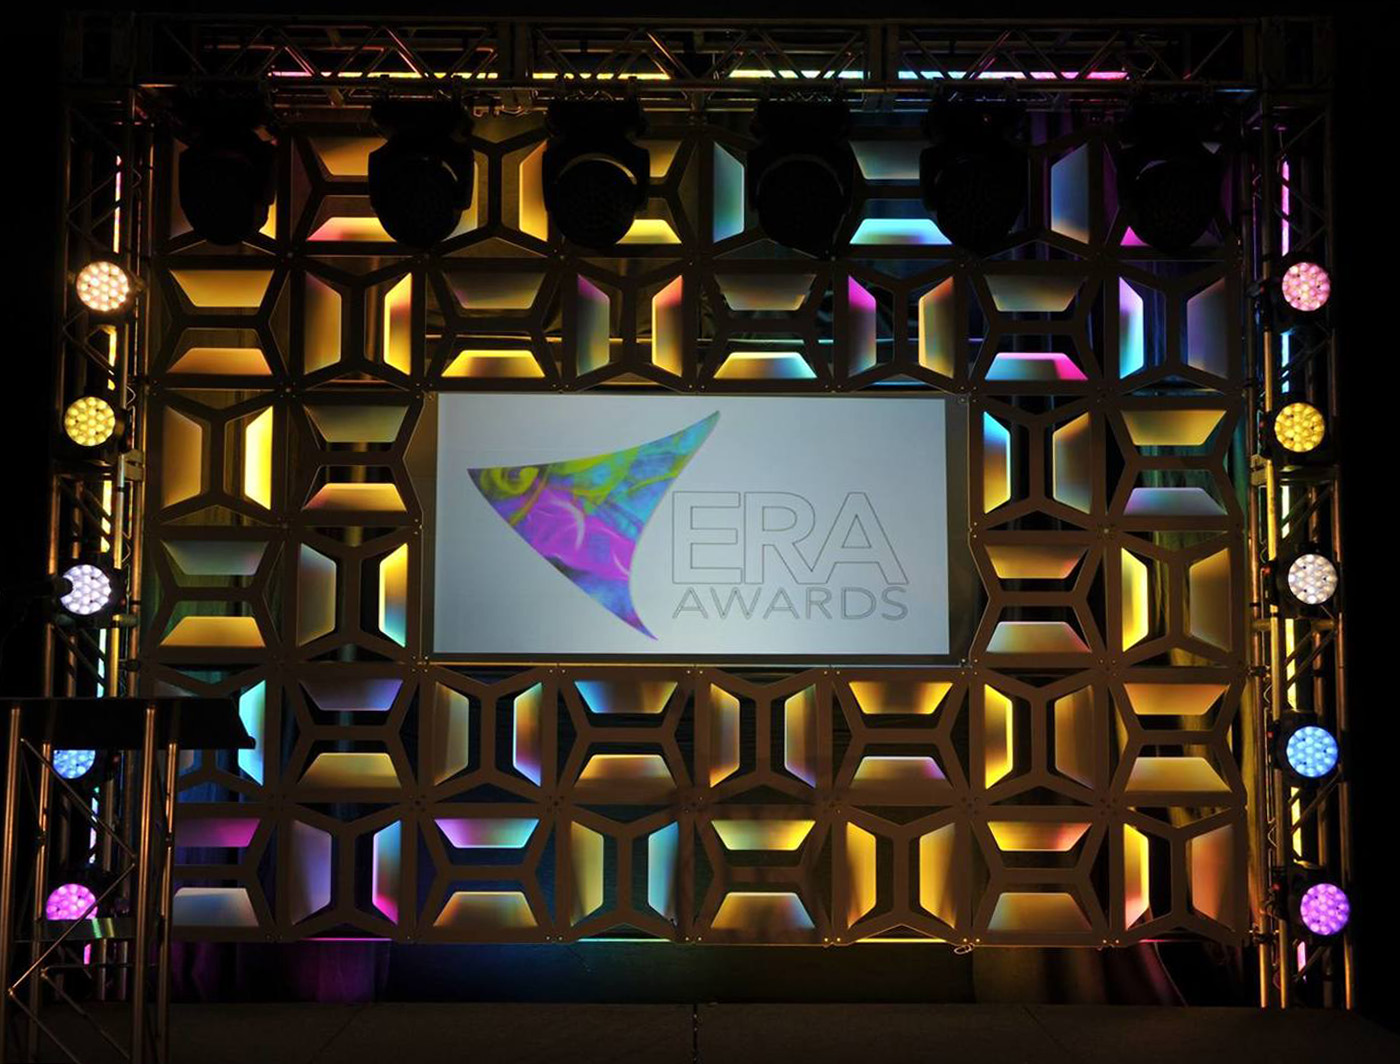 Hive blend with the era awards colorful theme